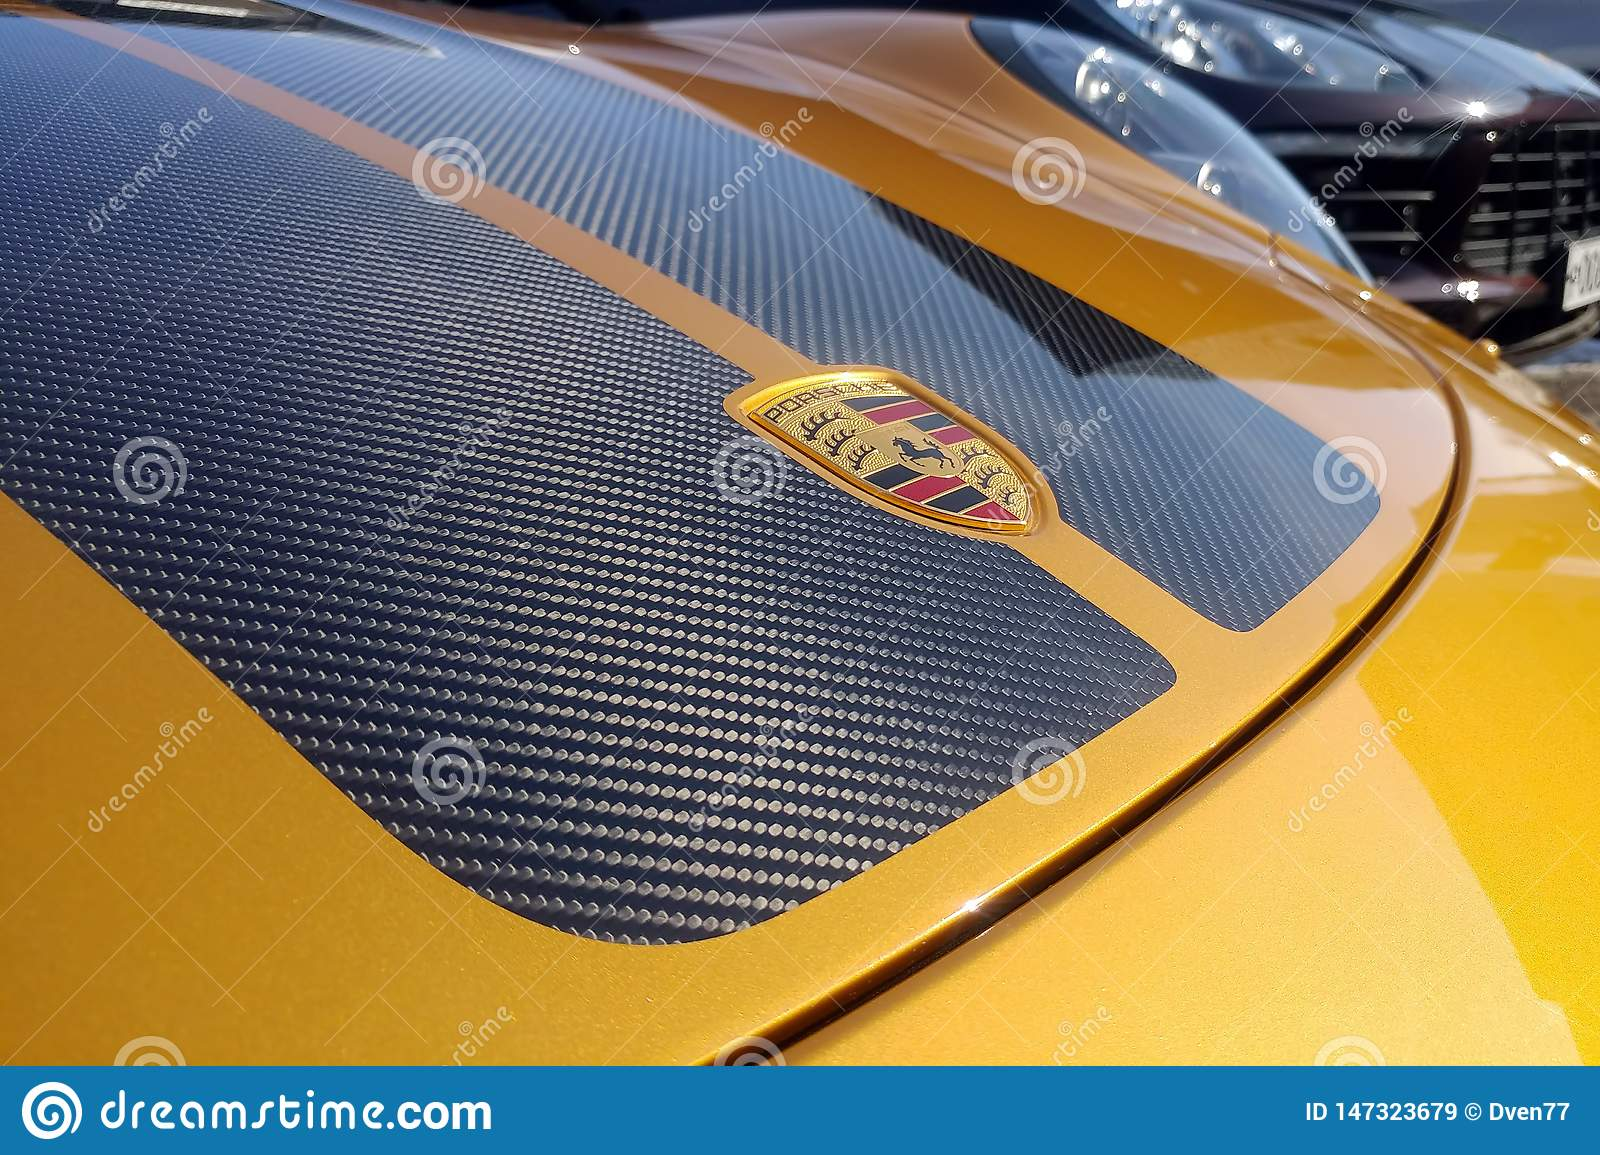 Moscow, Russia - May 09, 2019: Golden Porsche 911 Exclusive series. Limited edition. Number three hundred thirty seven. In the